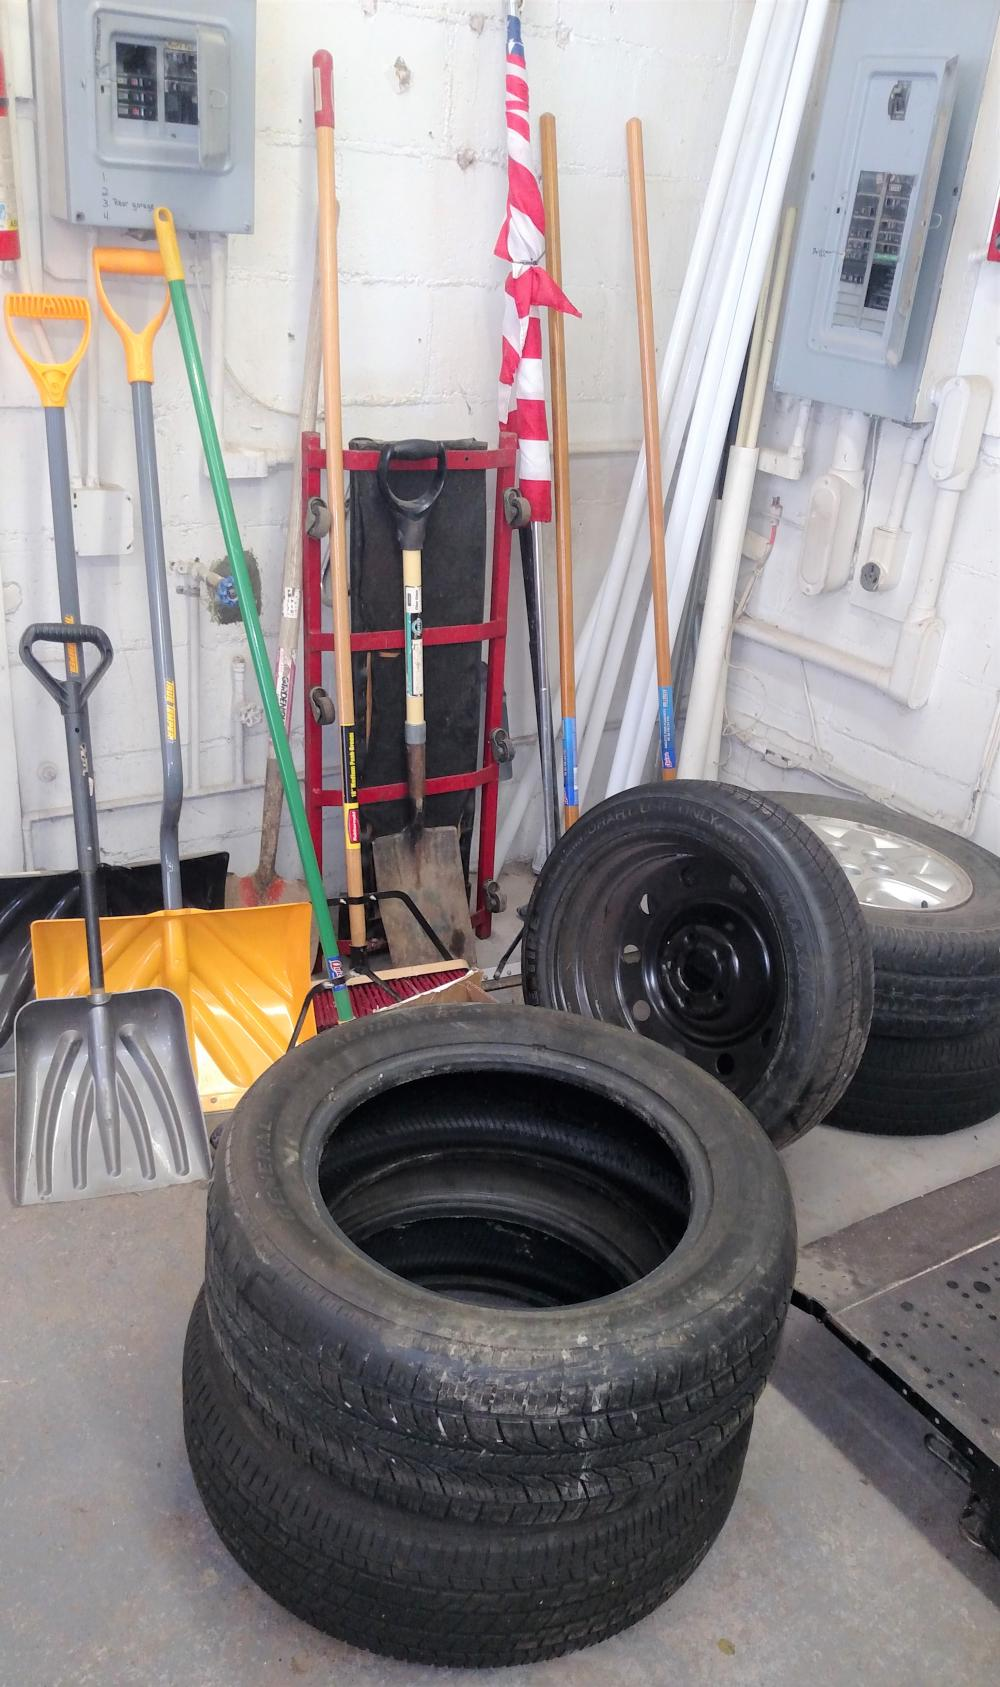 tool joblot-- shovels, spade, usa flag, car creeper, tires (1 w/rim)